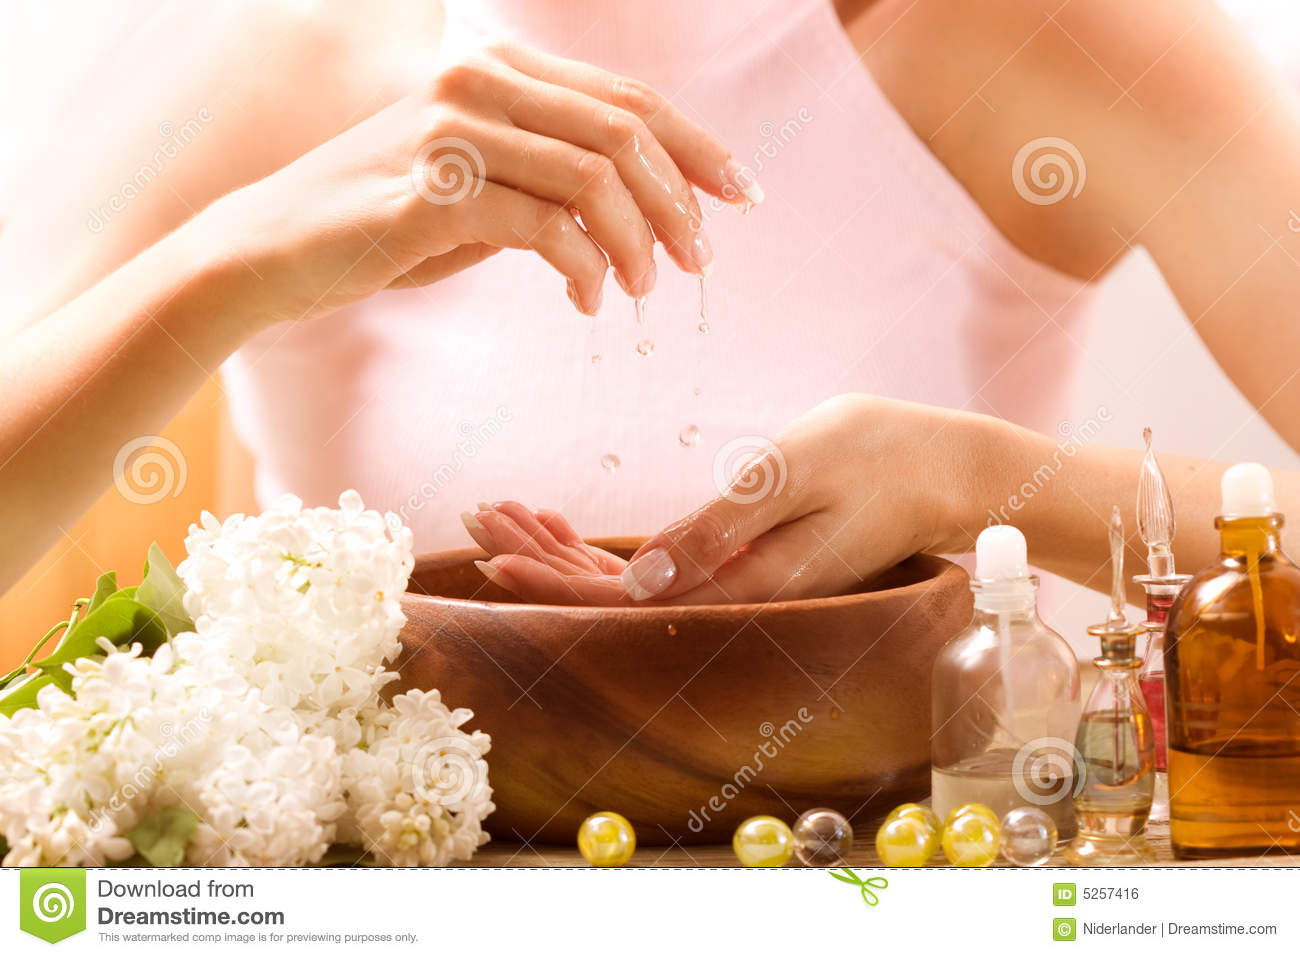 Hands Relaxing Royalty Free Stock Image - Image: 5257416  Hands Relaxing ...